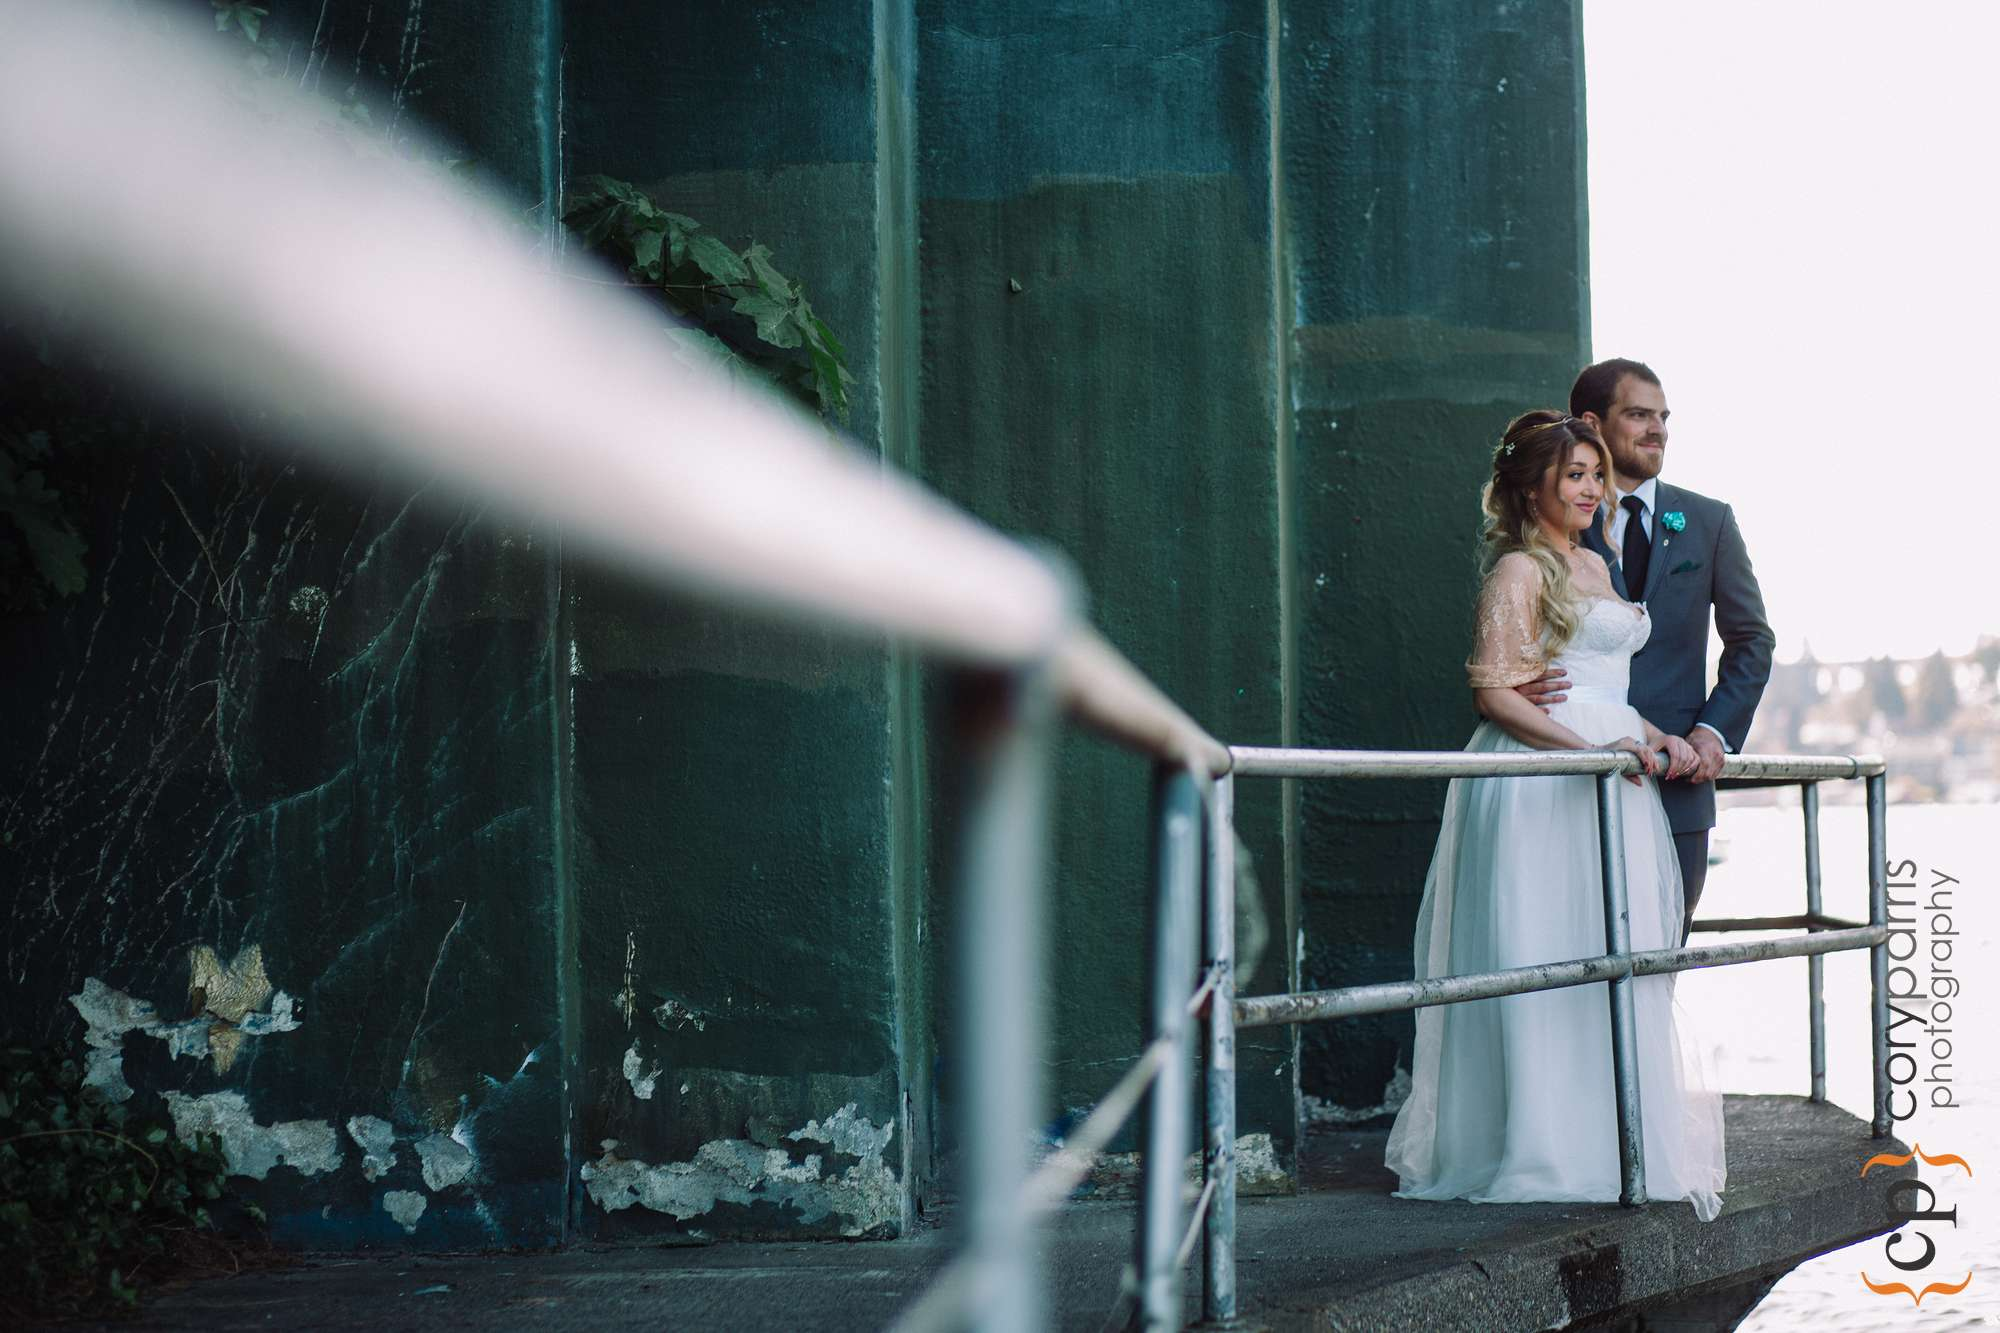 Wedding photography at South Passage Park